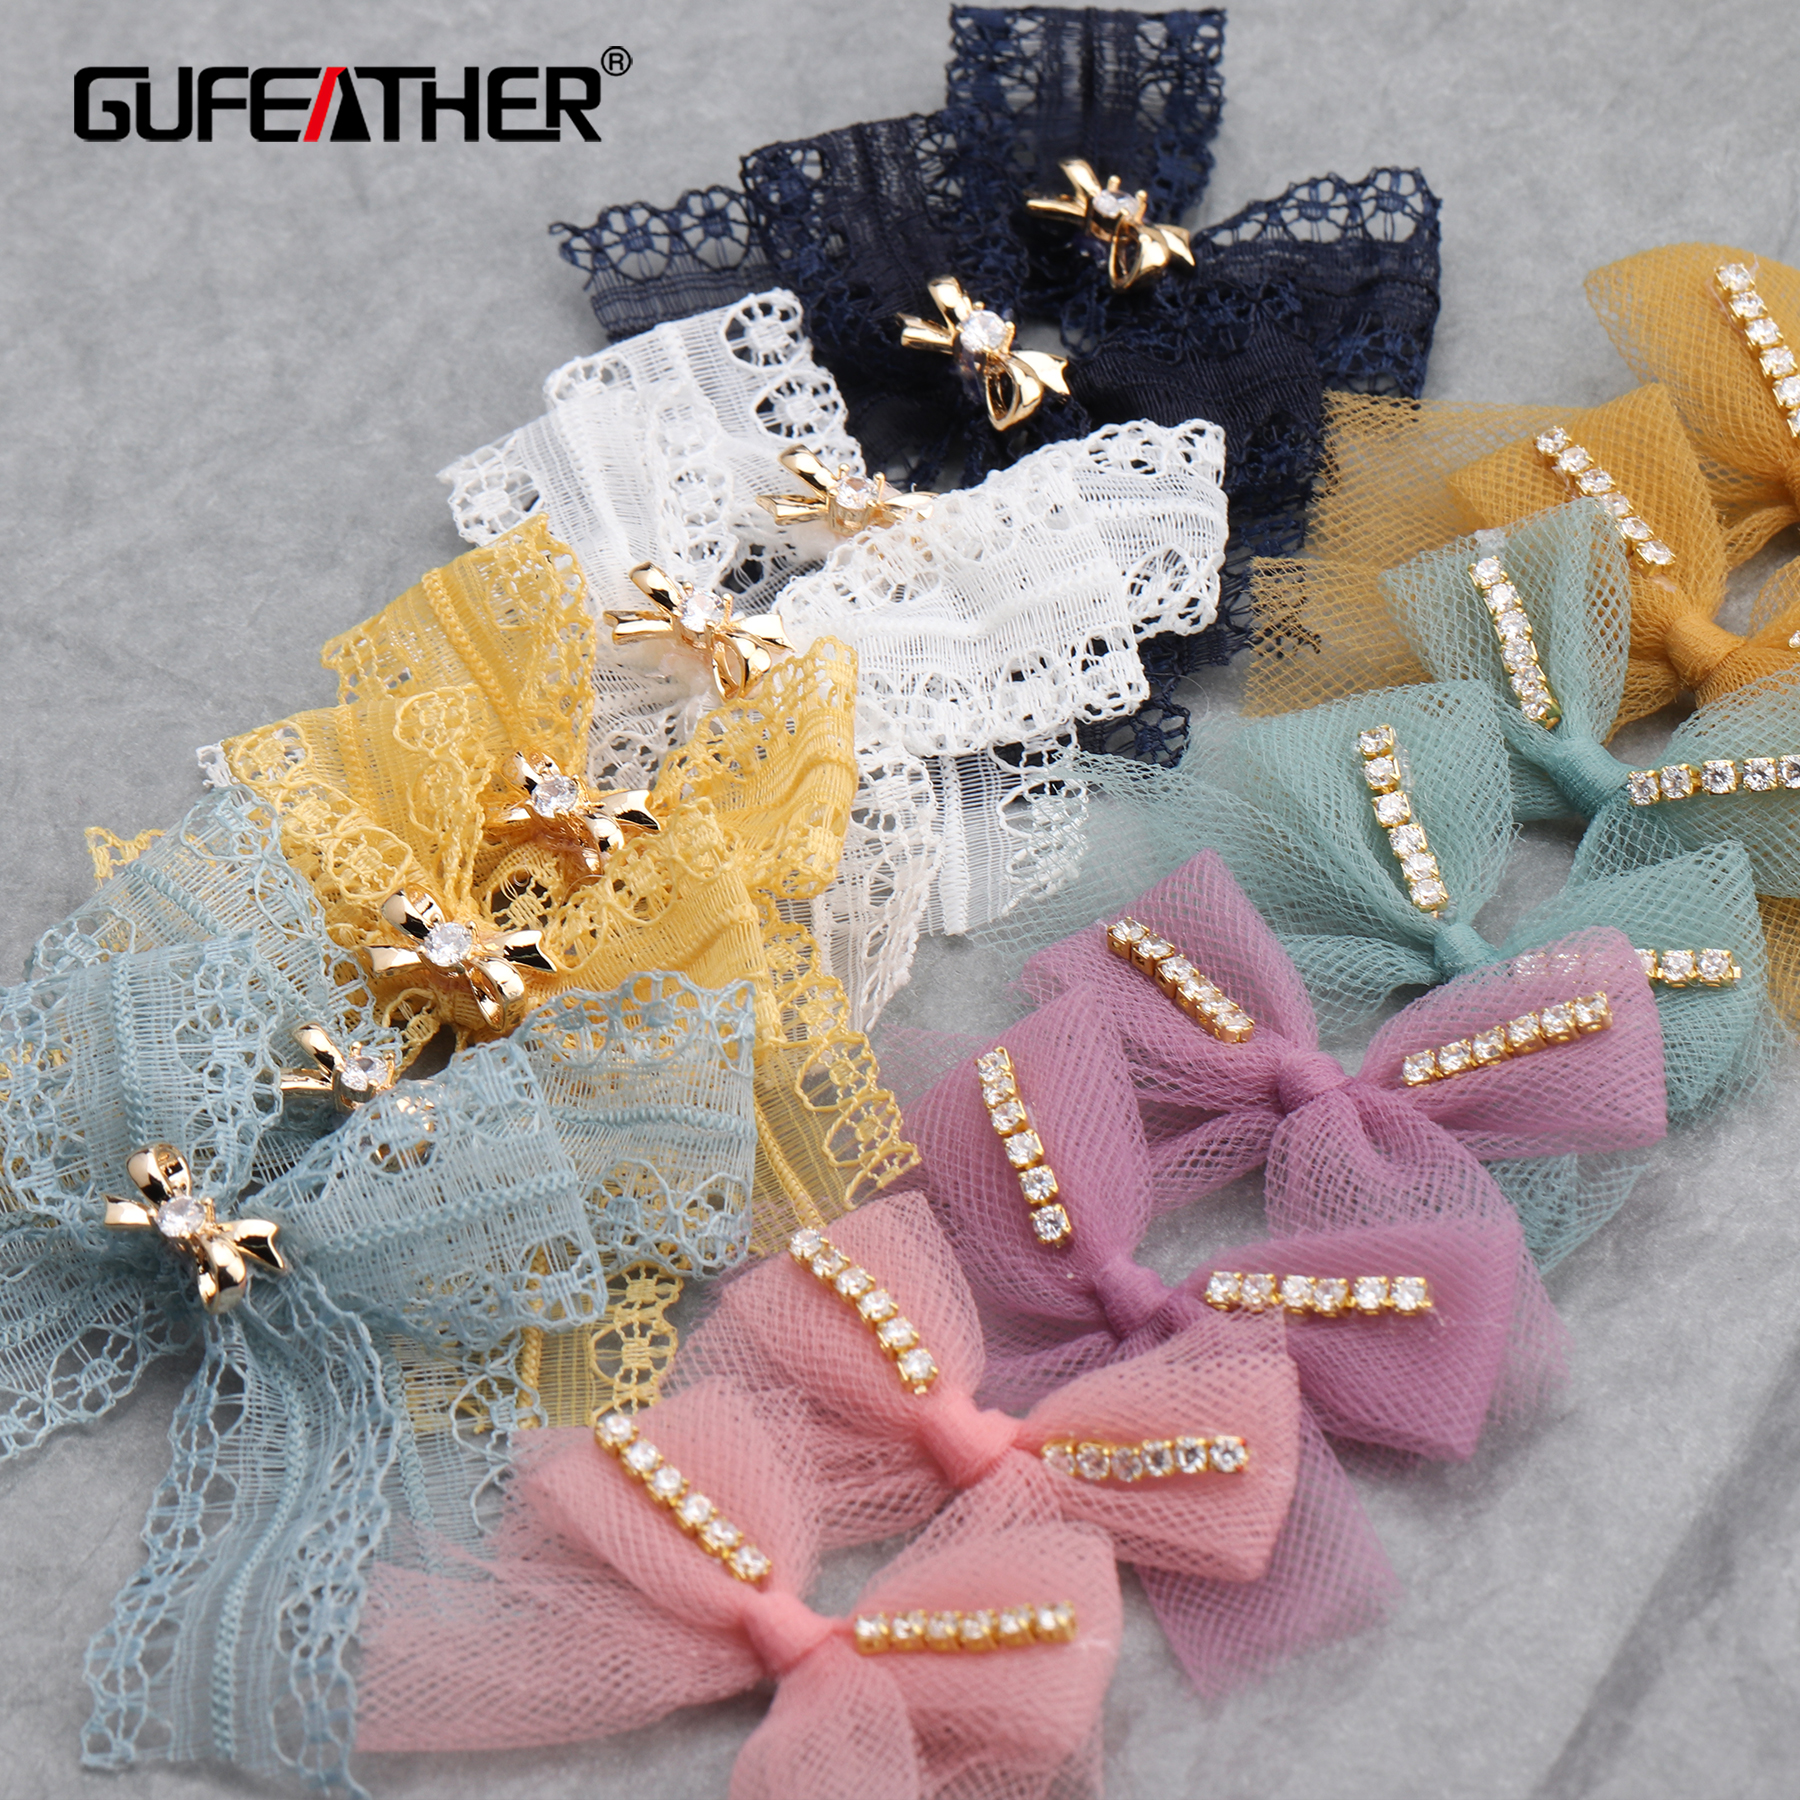 GUFEATHER M649,jewelry Making,diy Pendant,bow-knot Shape,hand Made Accessories,zircon,copper Metal,mesh,diy Earrings,10pcs/lot